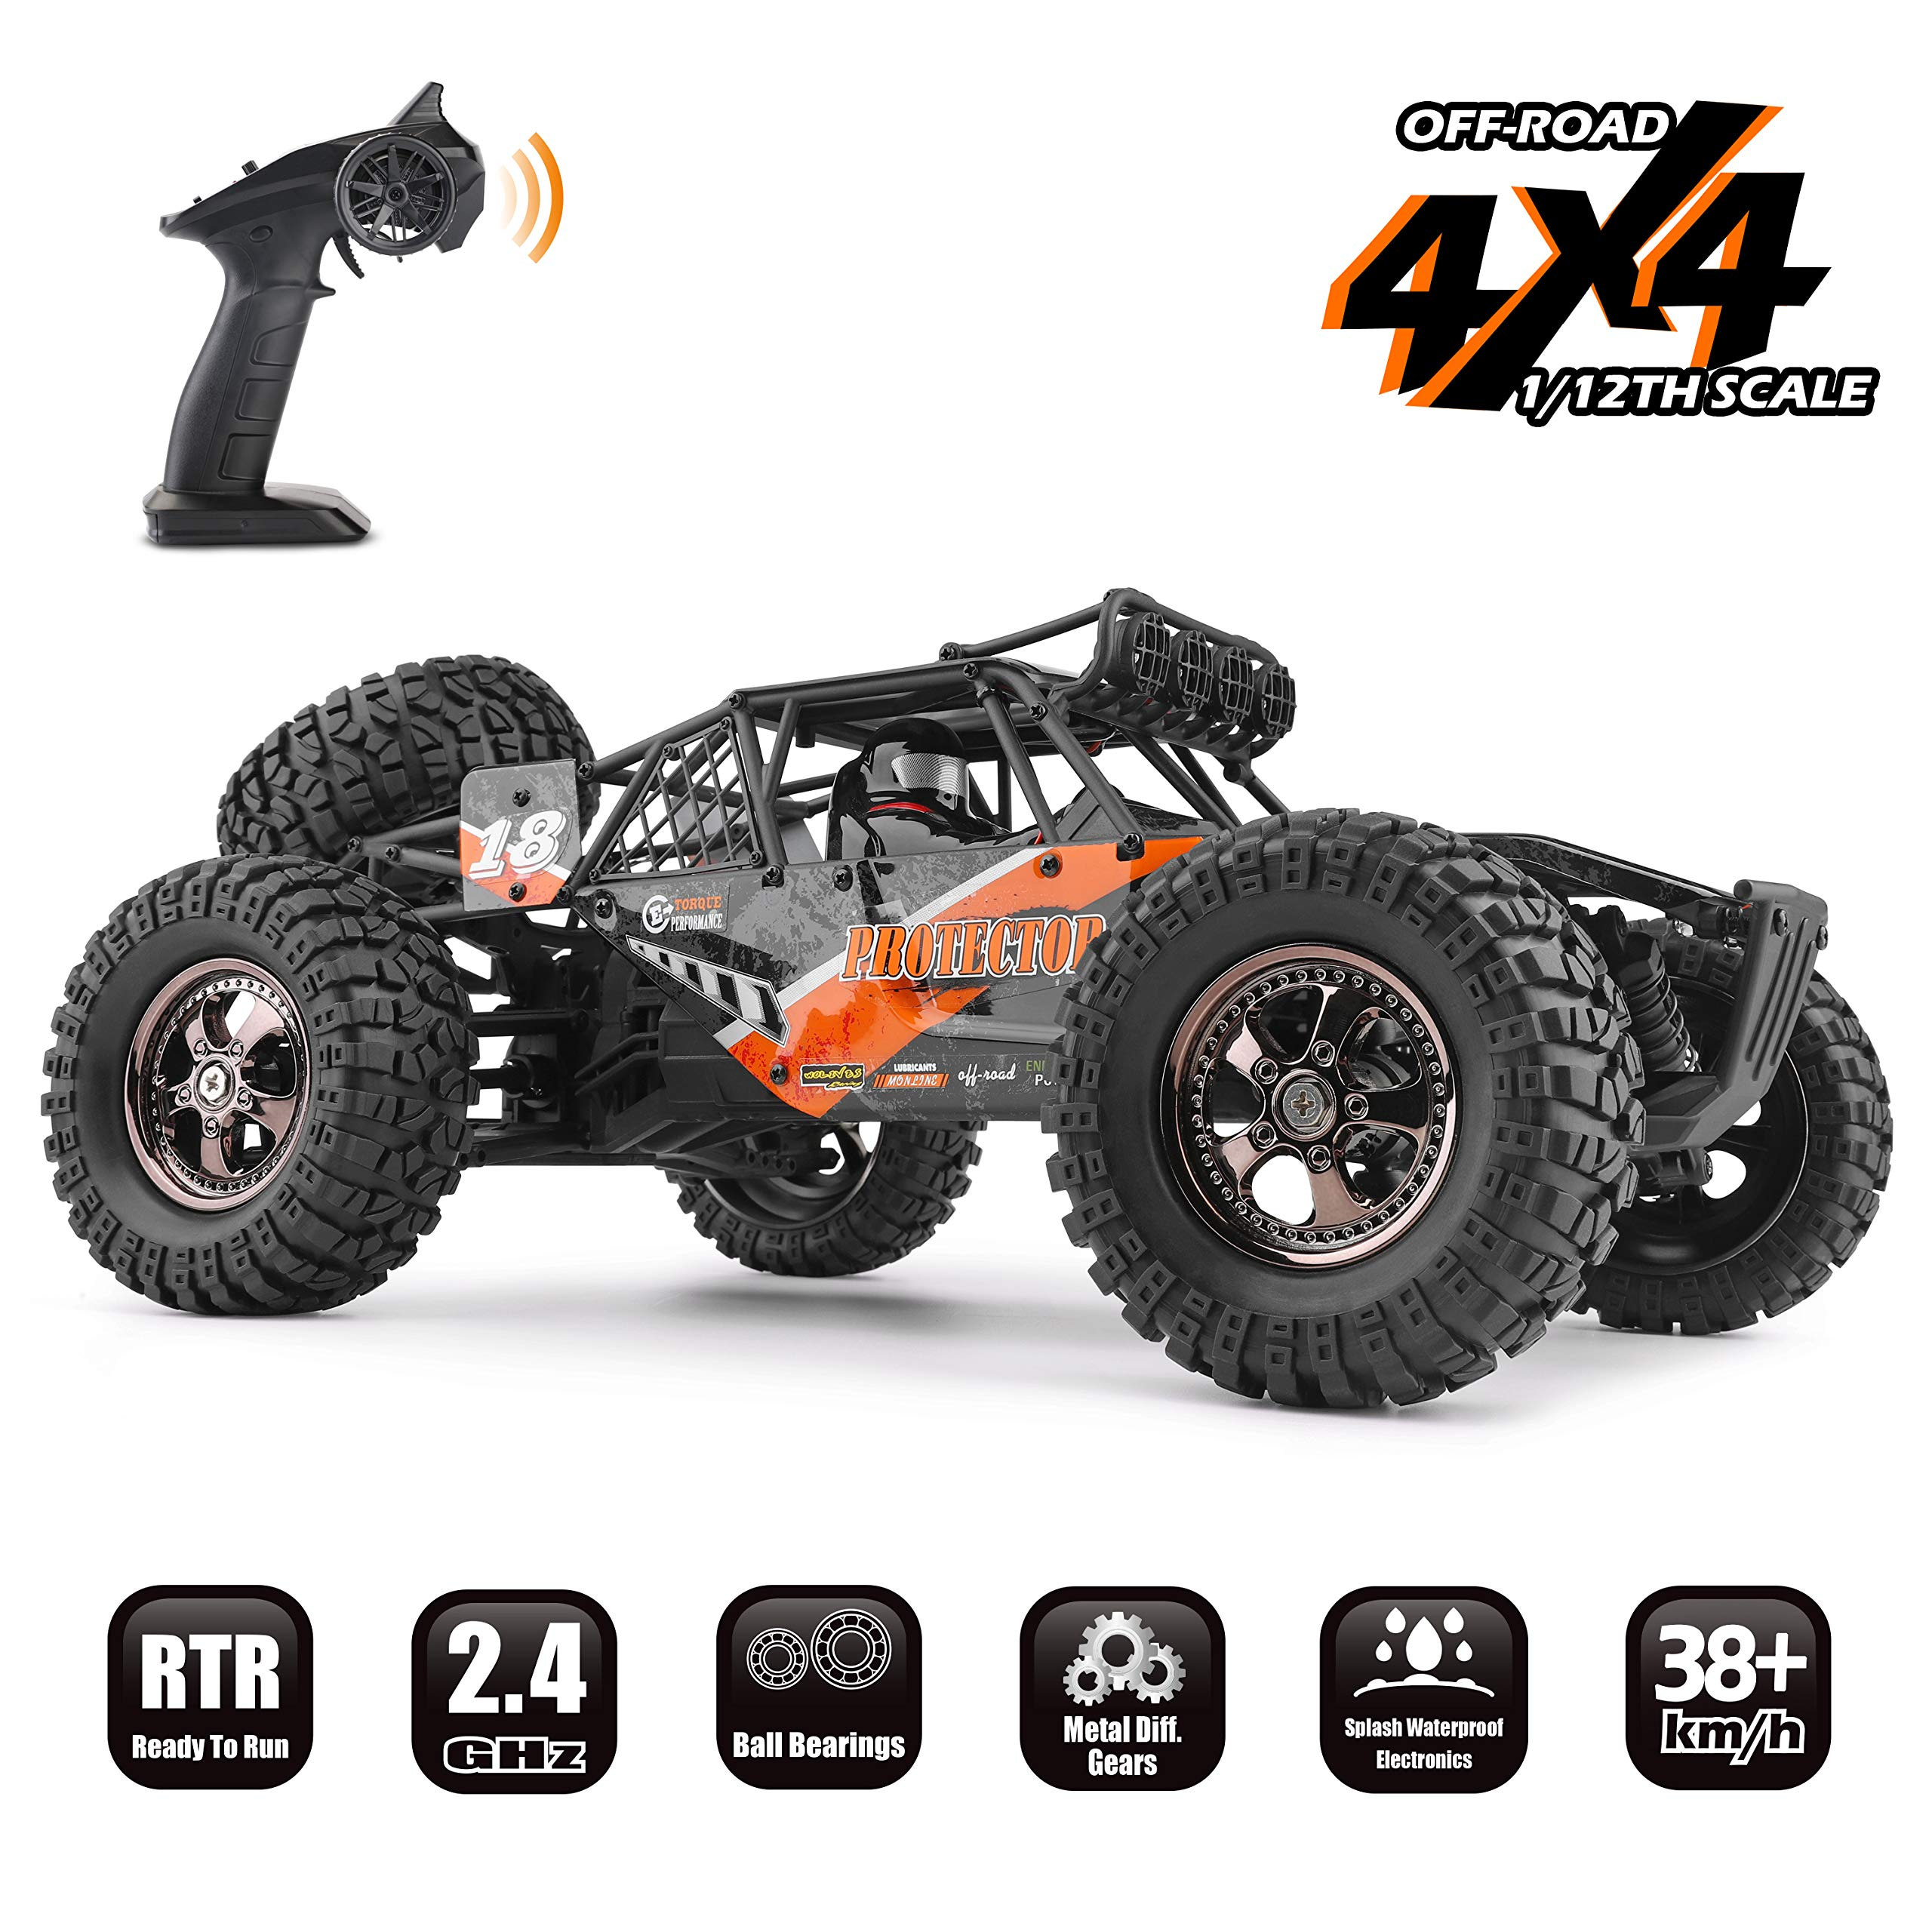 RC Cars Protector 1/12 Scale 4WD Off-Road Buggy 38+KM/H High Speed LED Lights, 2.4 GHz Radio Controlled All Terrain Waterproof Trucks RTR Electric Power Rechargeable Batteries 7.4 V 1500 mAh by BBM HOBBY (Image #7)